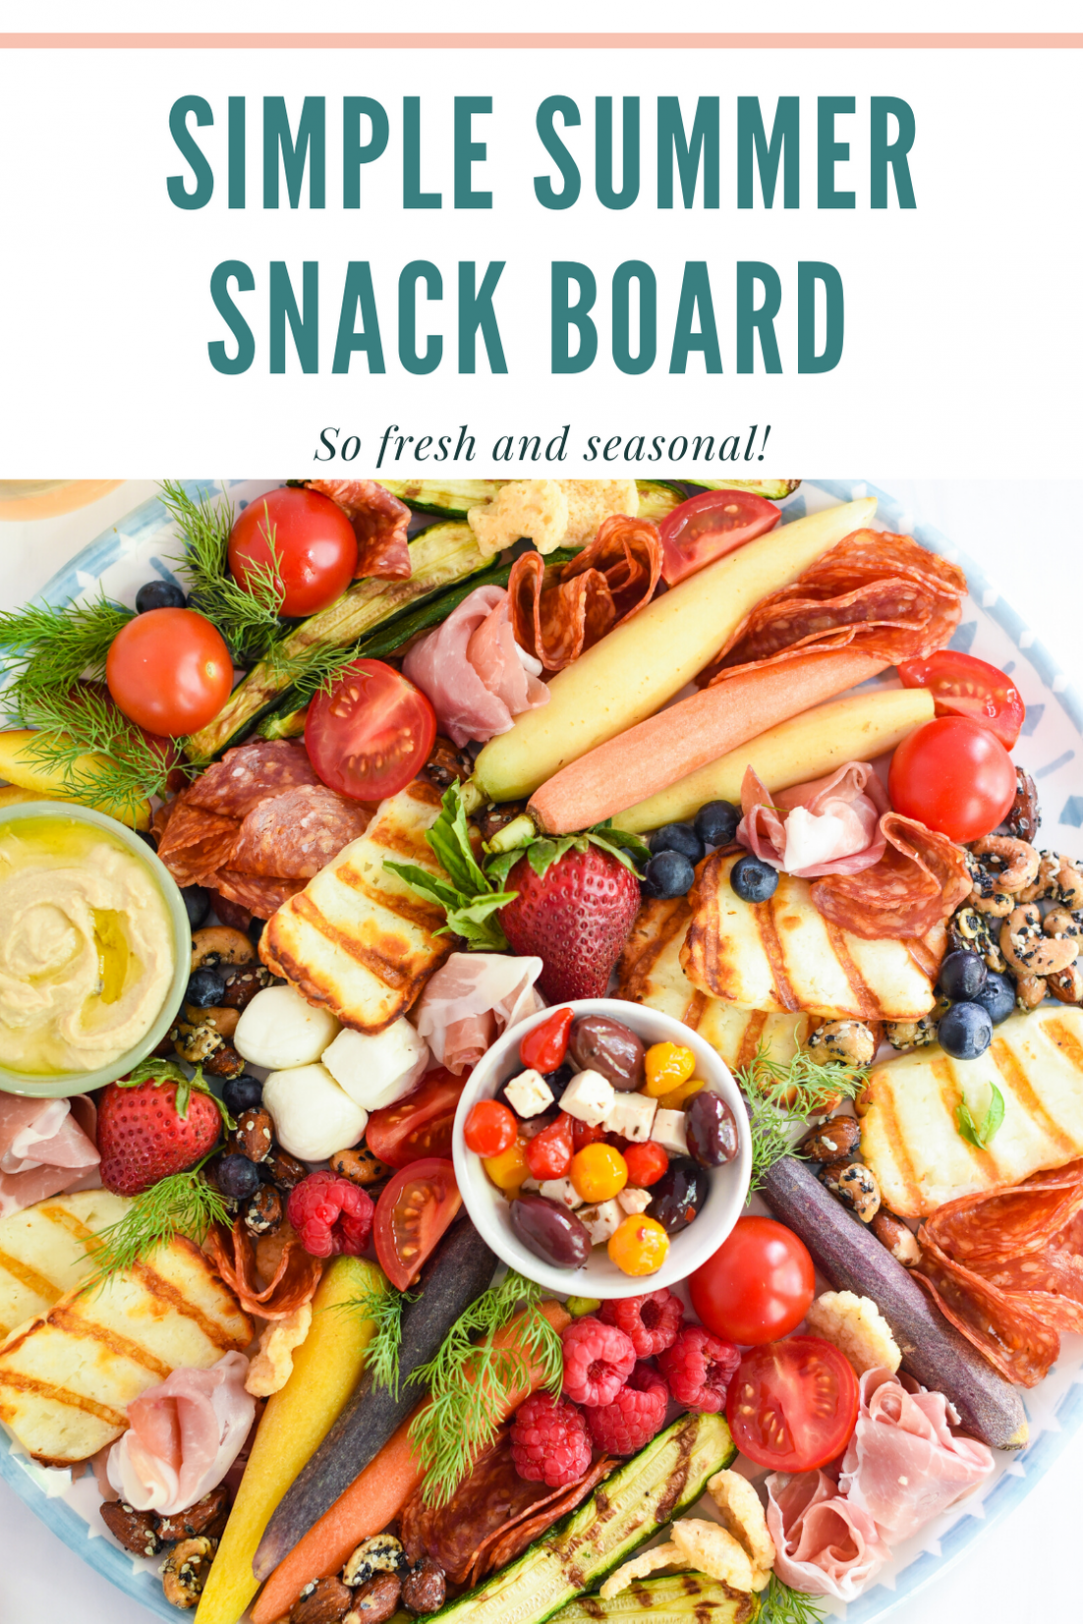 Snack Board with fruits, veggies, and dips.